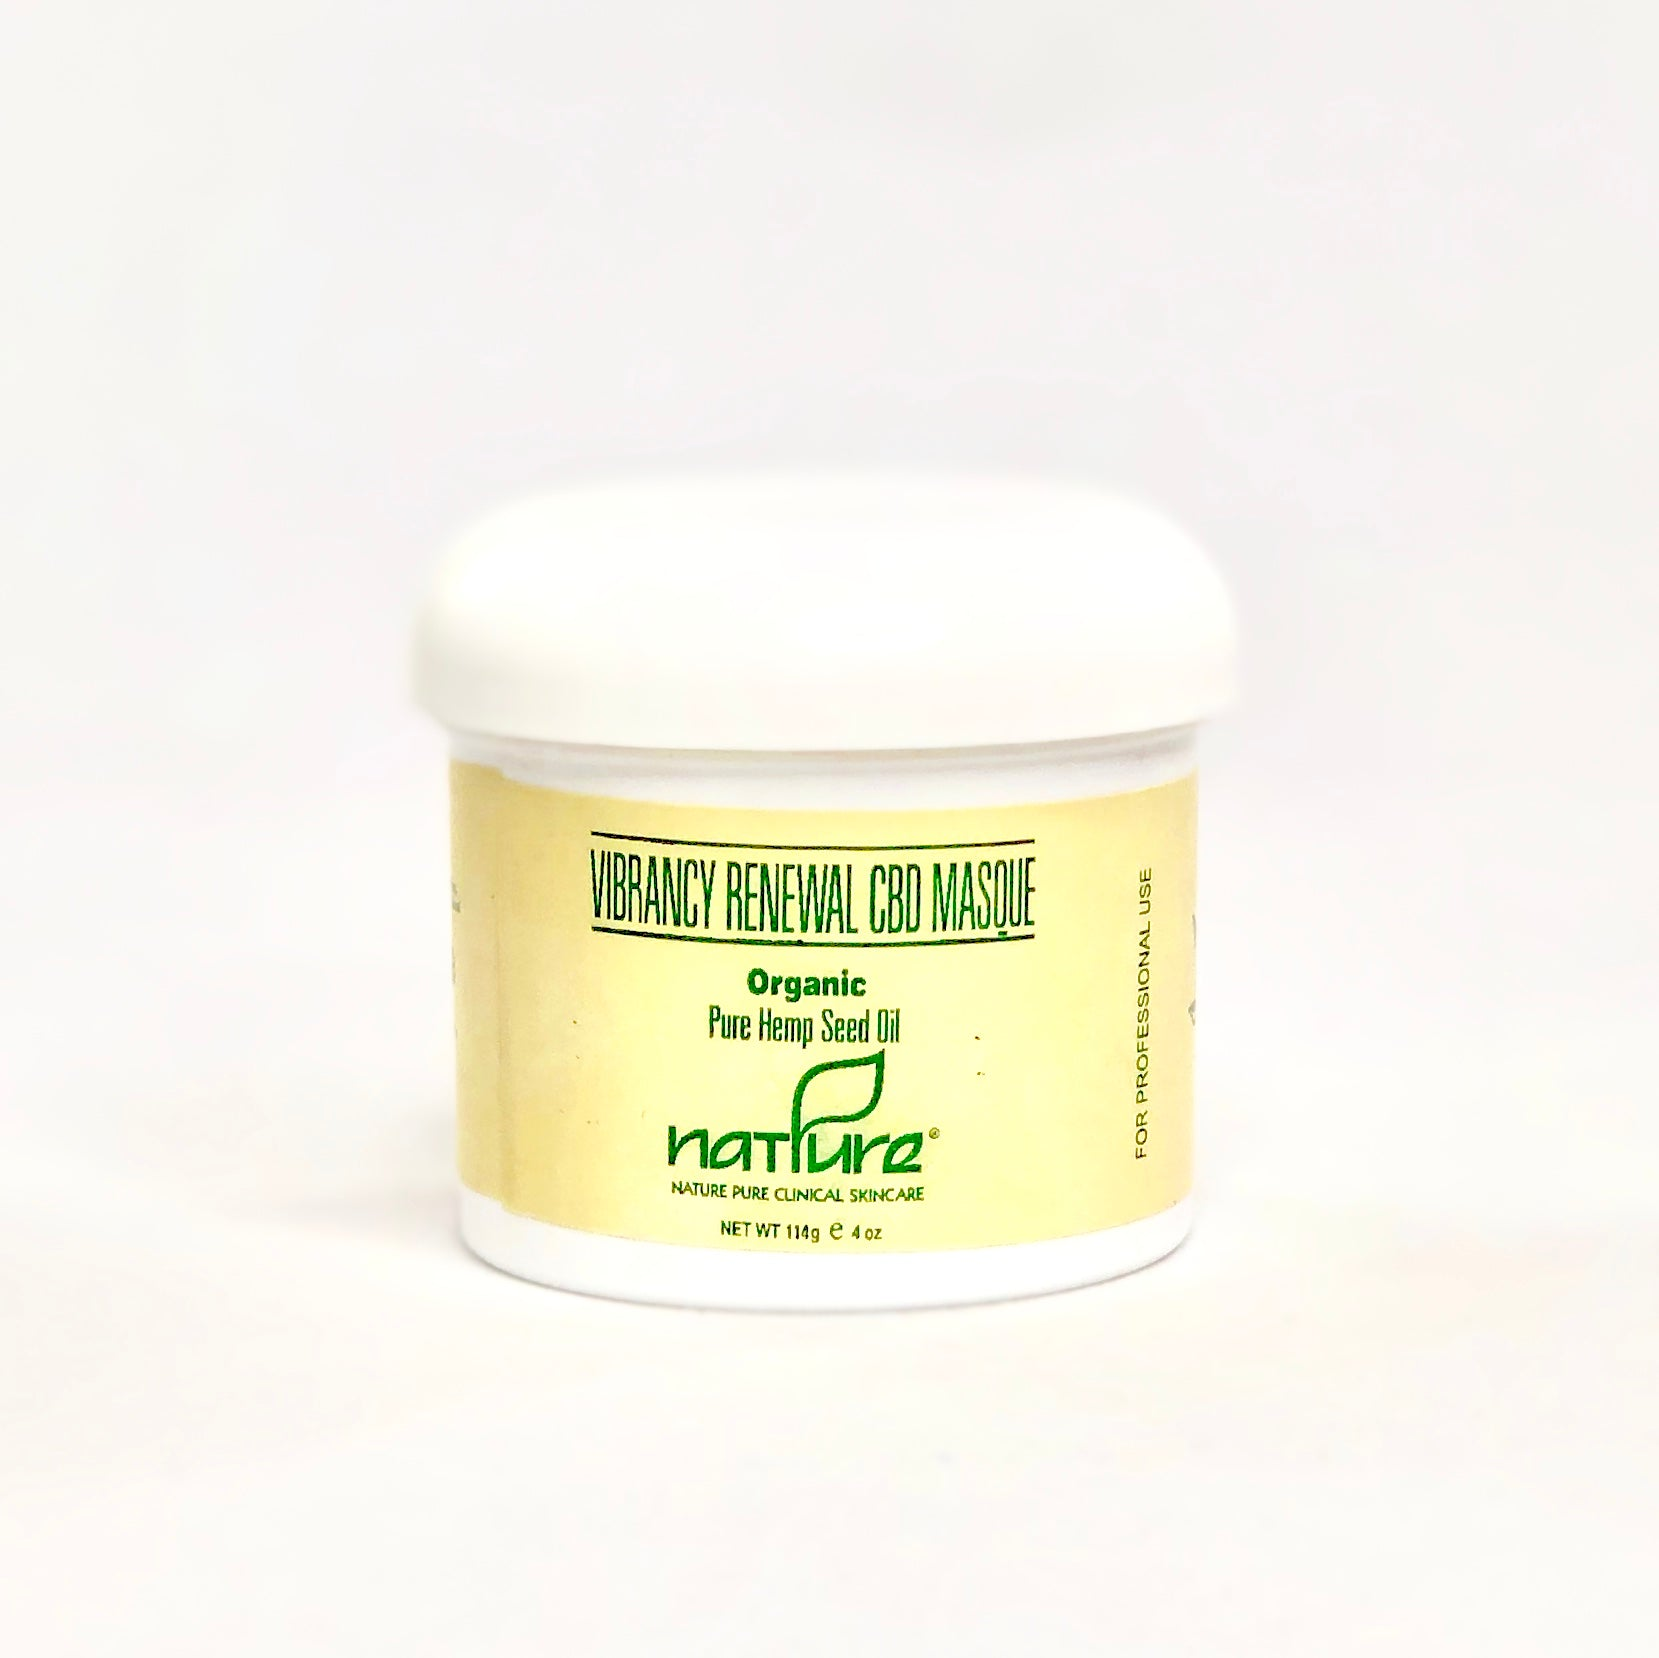 Professional Vibrancy Renewal CBD Masque